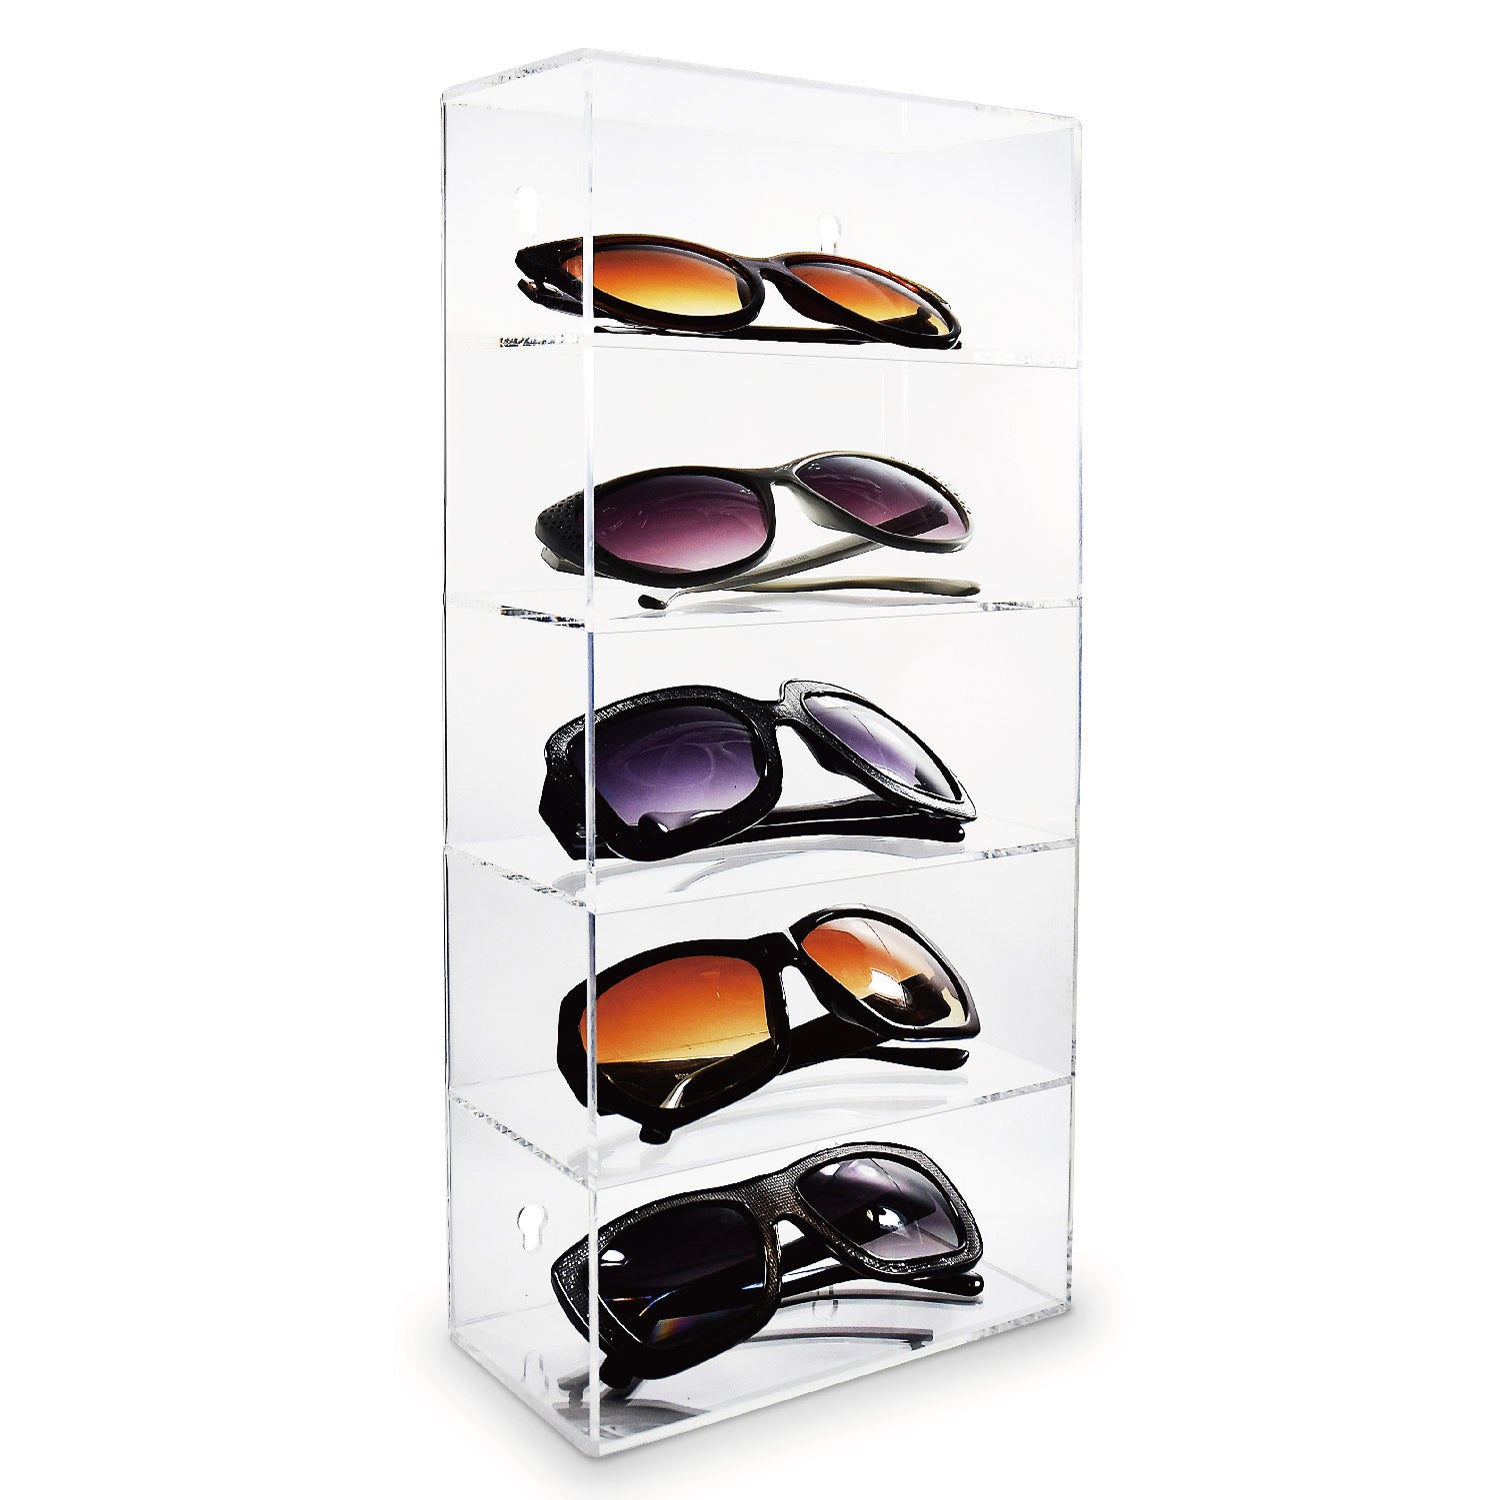 #DP319 Acrylic Five Shelves Eyewear Case Display | APEX International